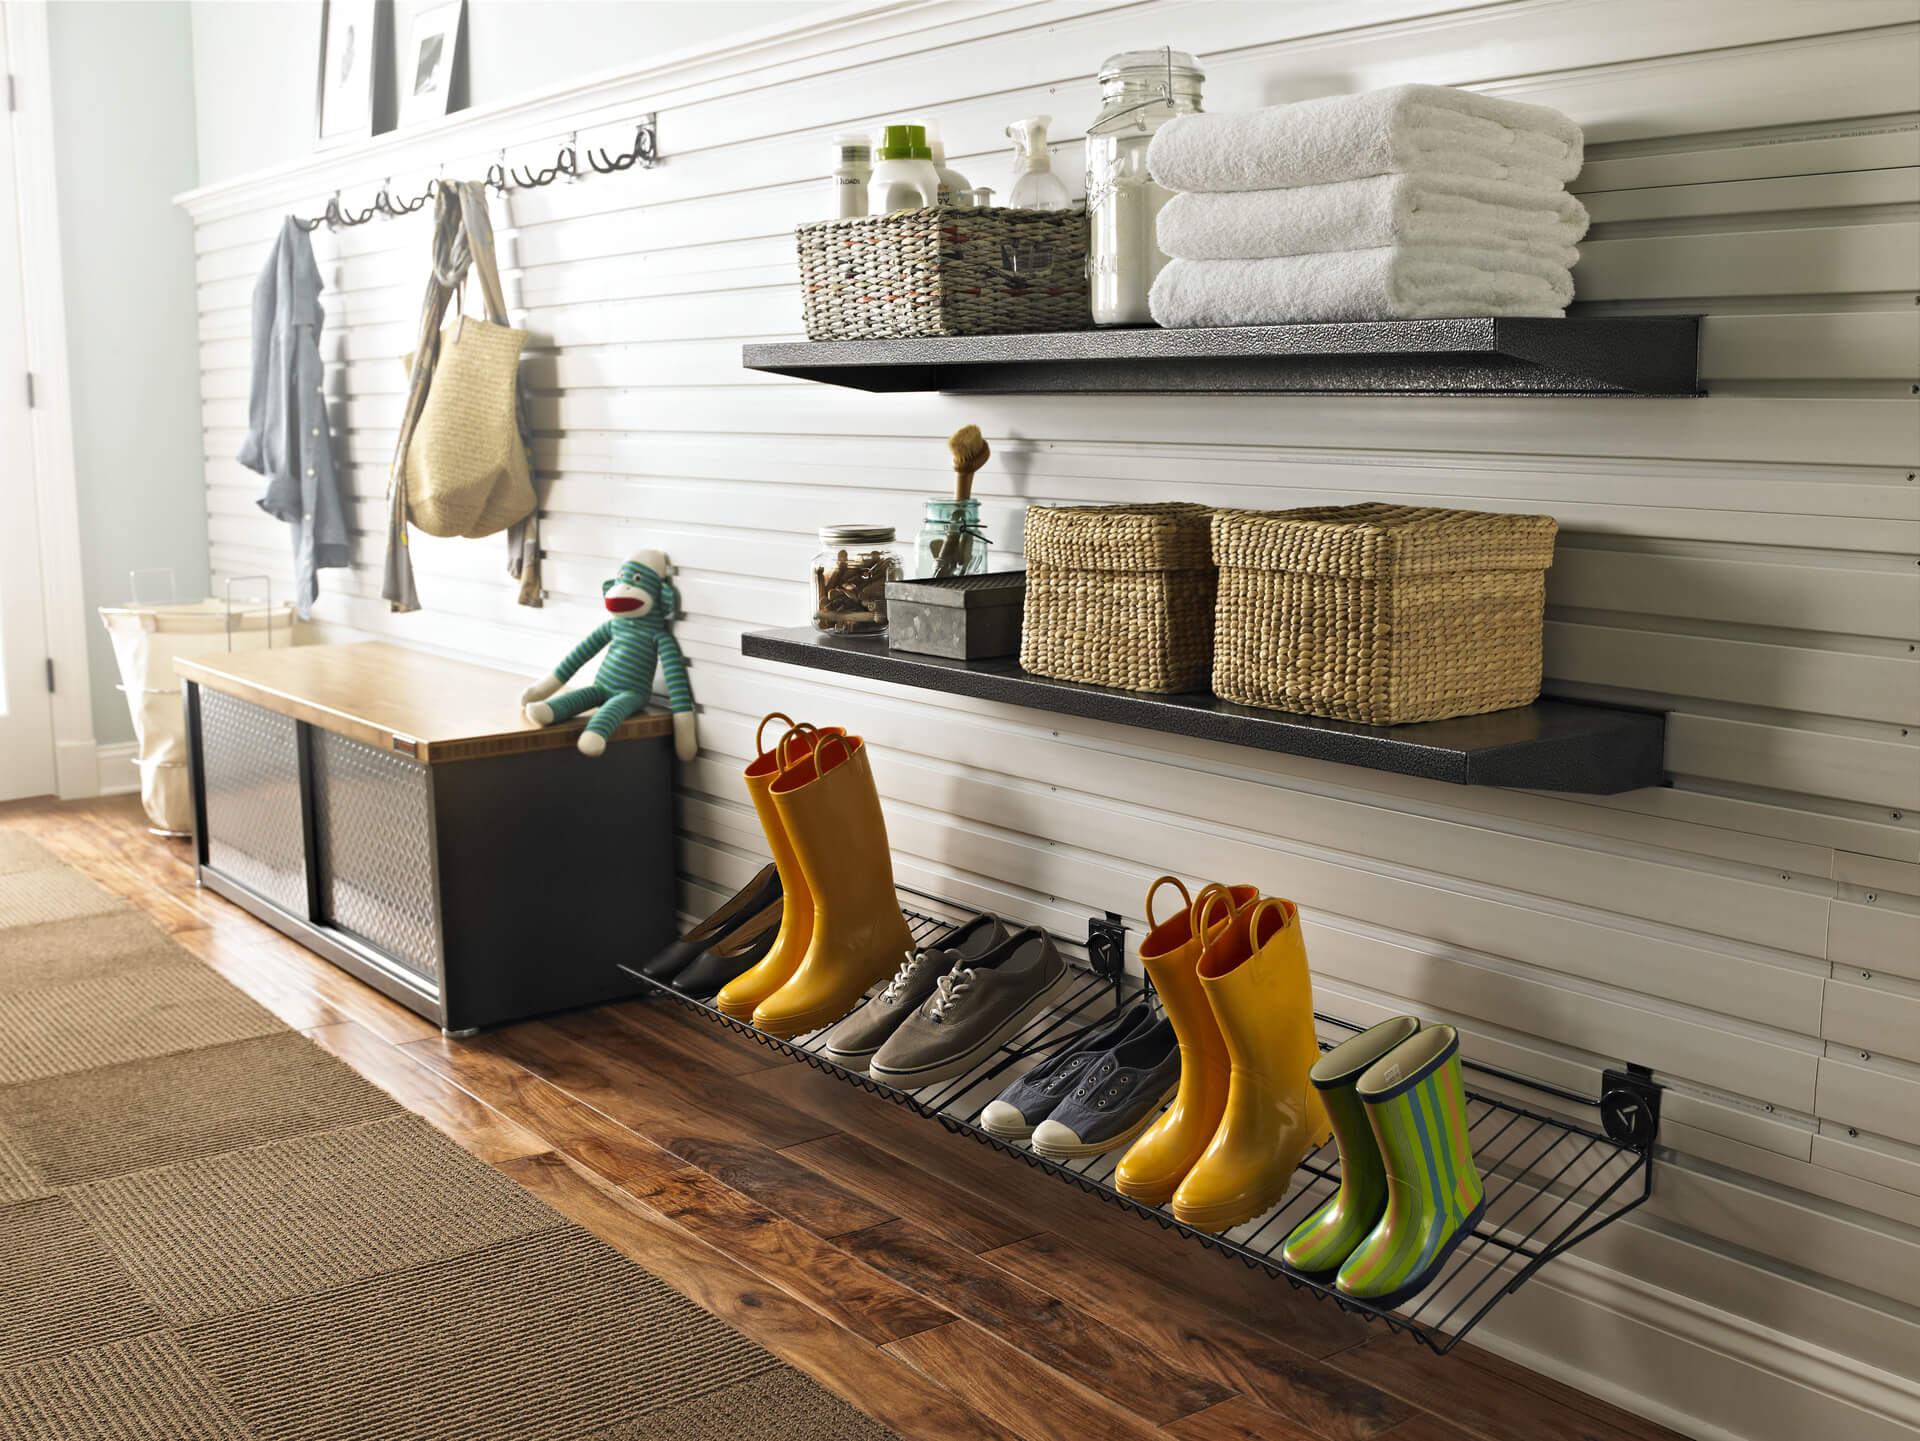 GARAGE SHOE ORGANIZATION IDEAS WITH LEANING WIRE RACK